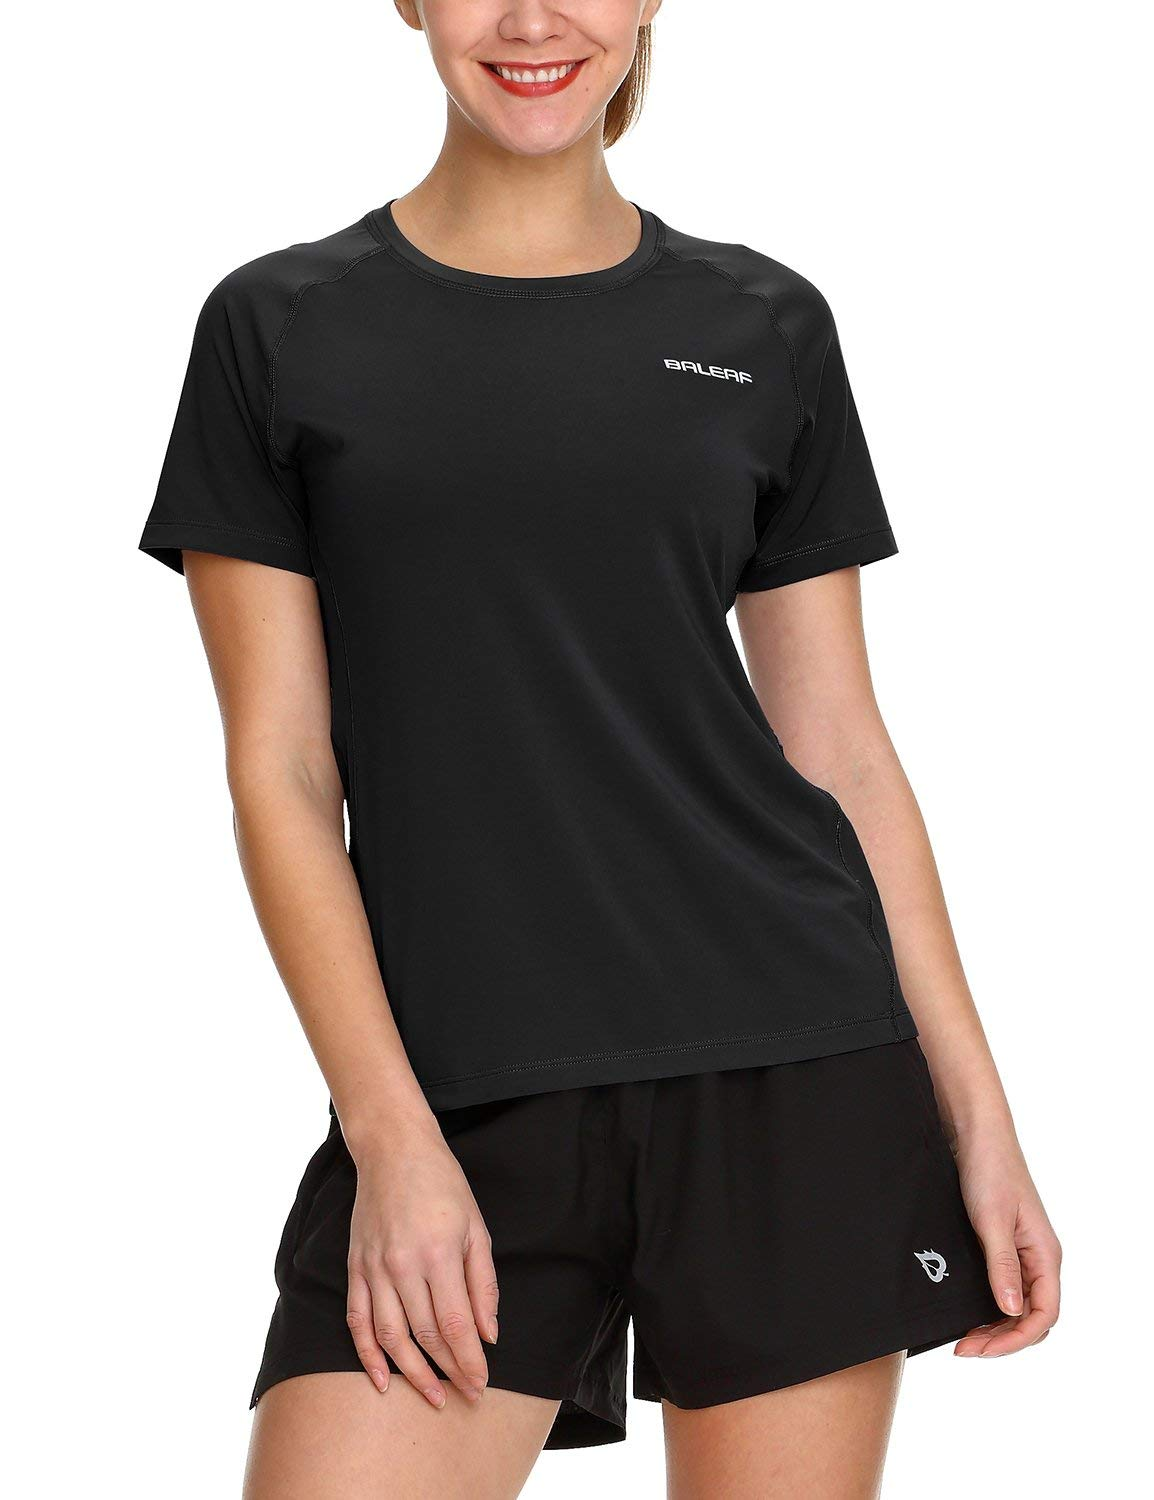 BALEAF Women's Running Shirts Quick Dry Short Sleeve Exercise Tops Round Neck